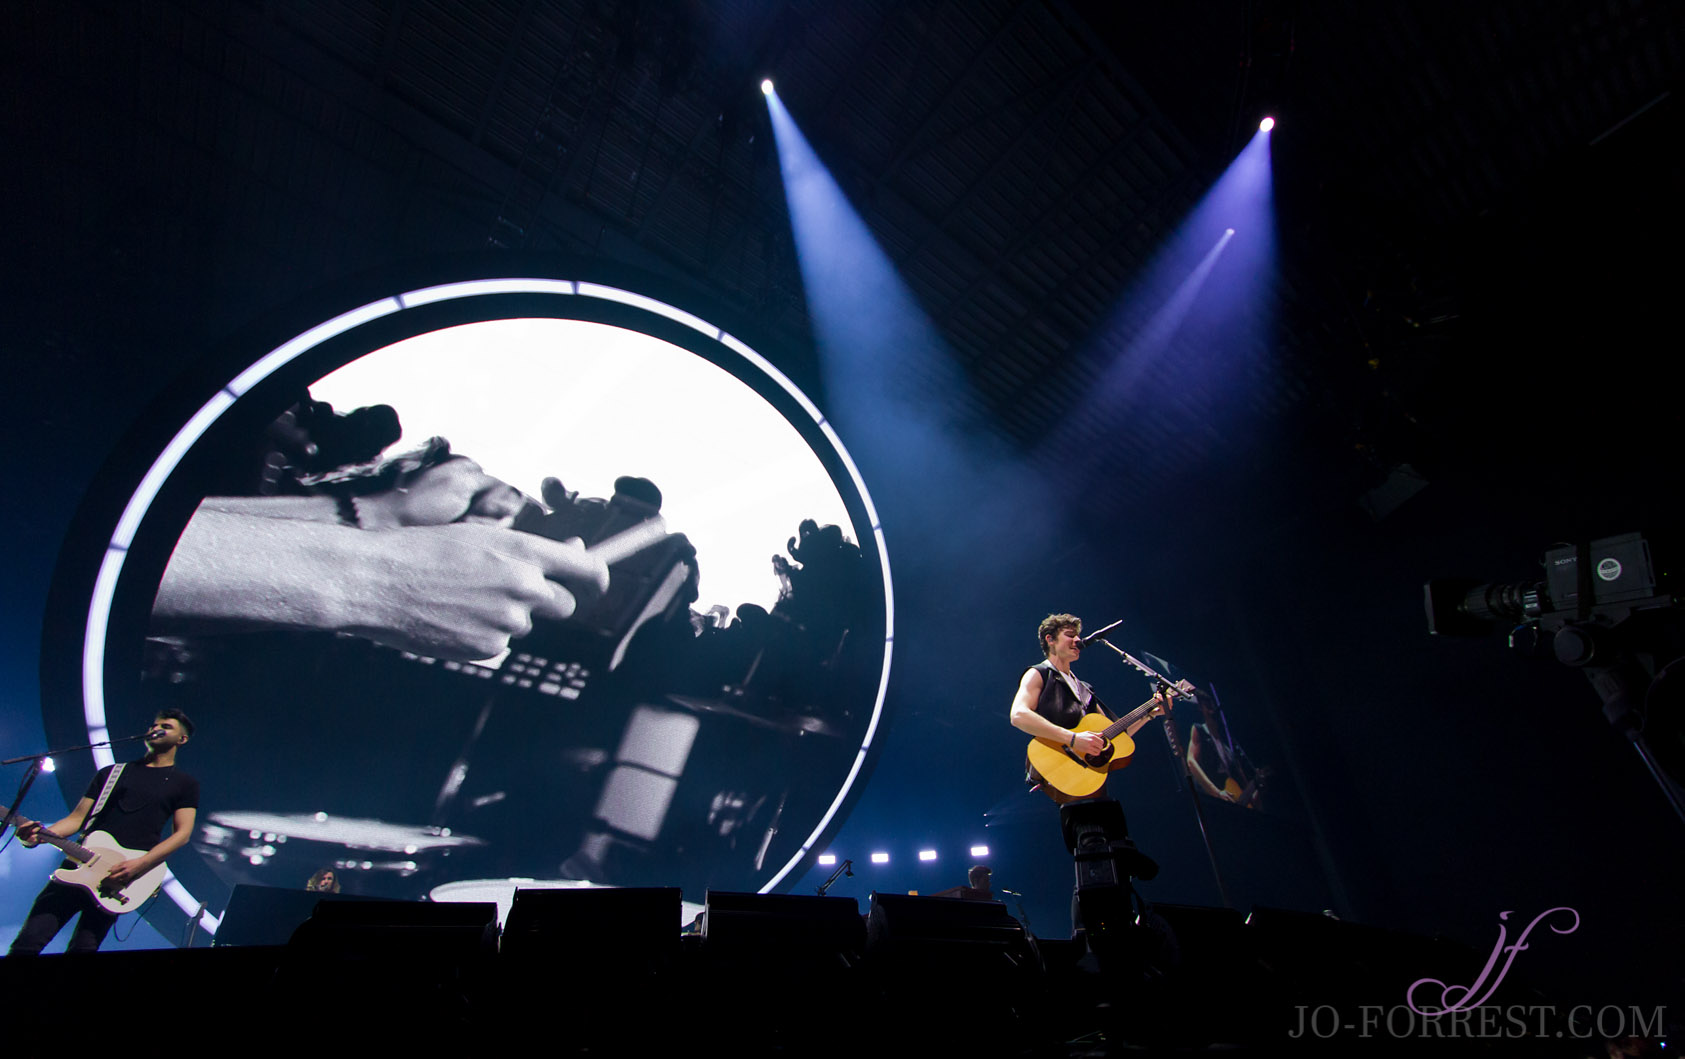 Shawn Mendes – Jo Forrest Photographer